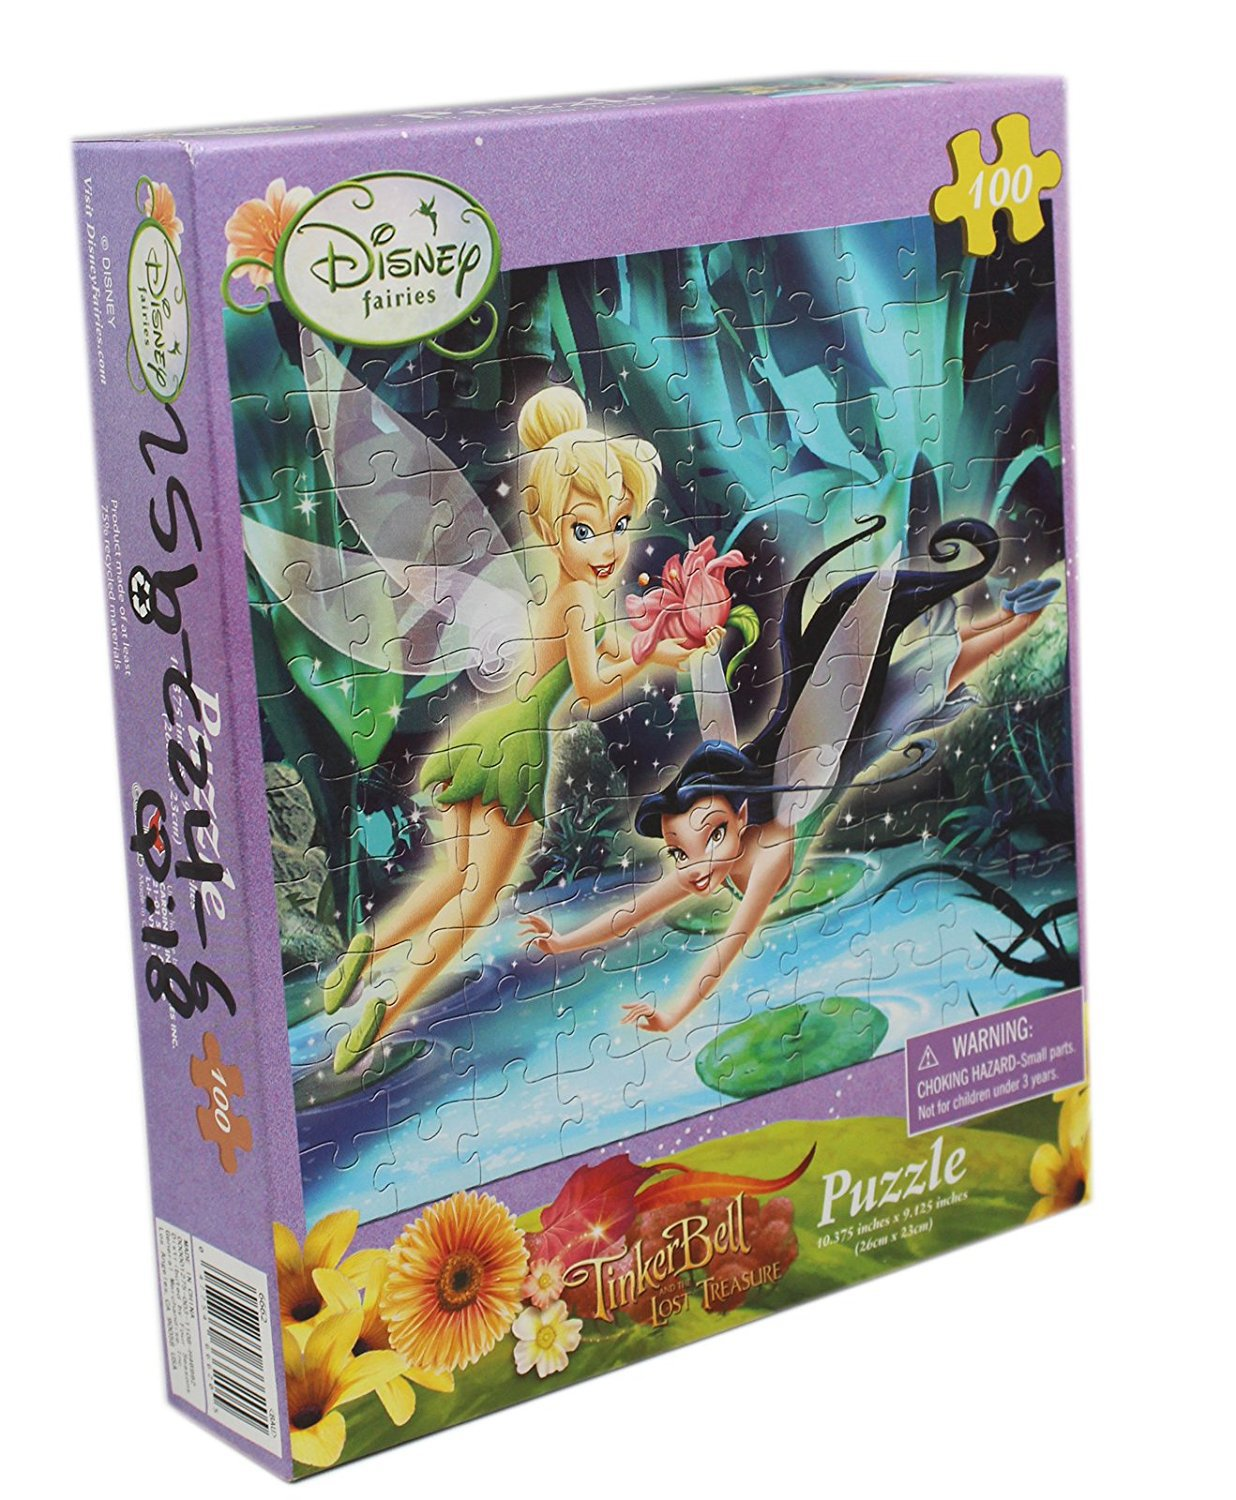 Disney's Tinker Bell and the Lost Treasure 100 Piece Puzzle